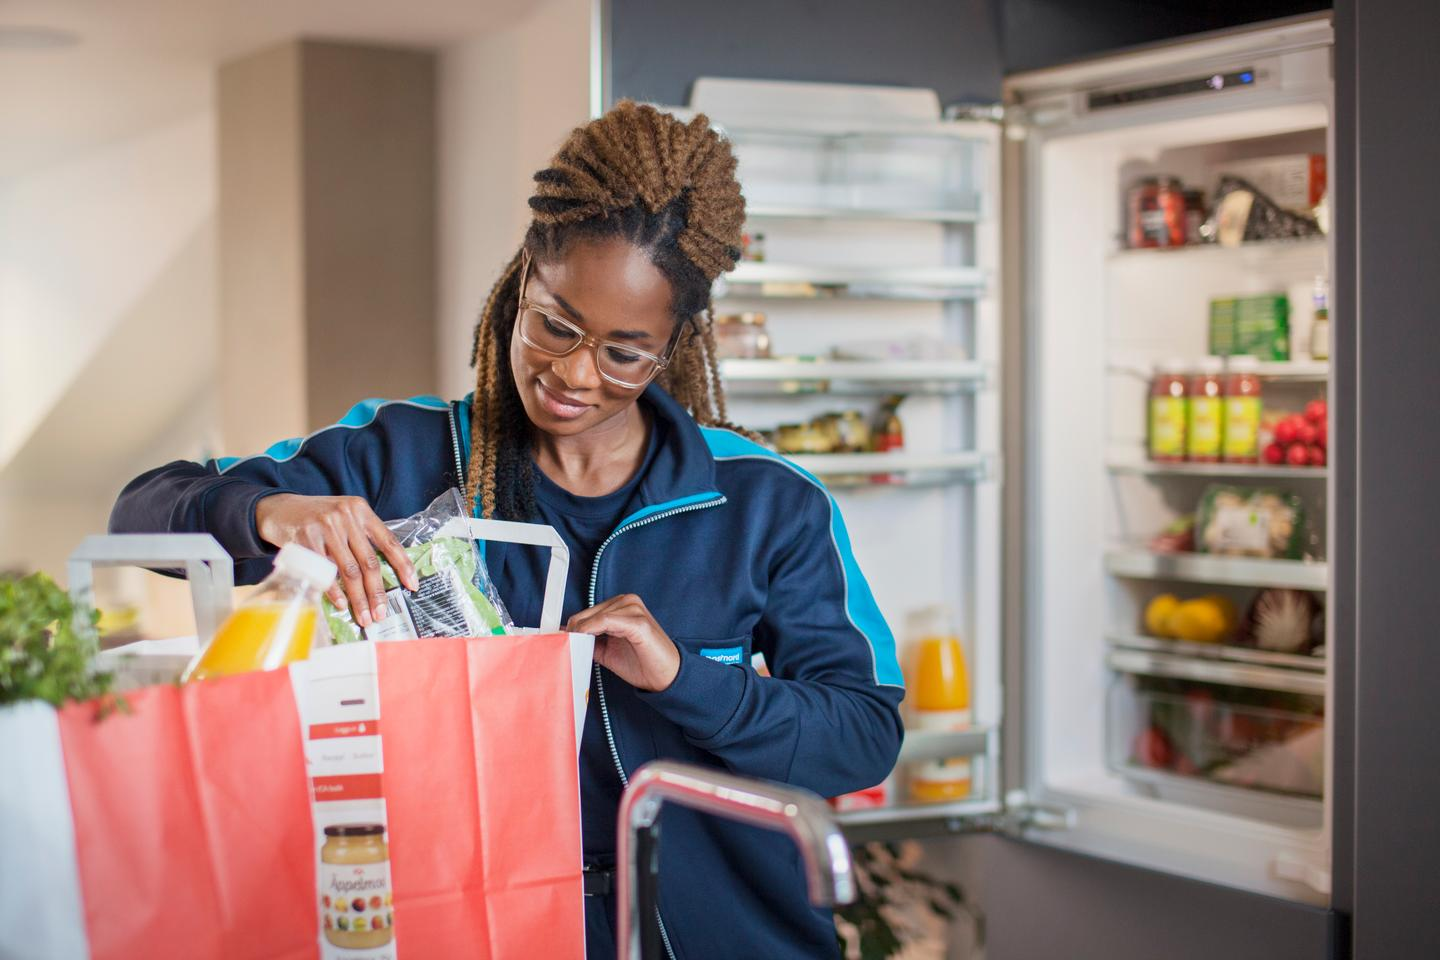 The In-Fridge Delivery pilot is being run by the online grocery chain, the firm responsible for delivering the goods and a smart lock provider